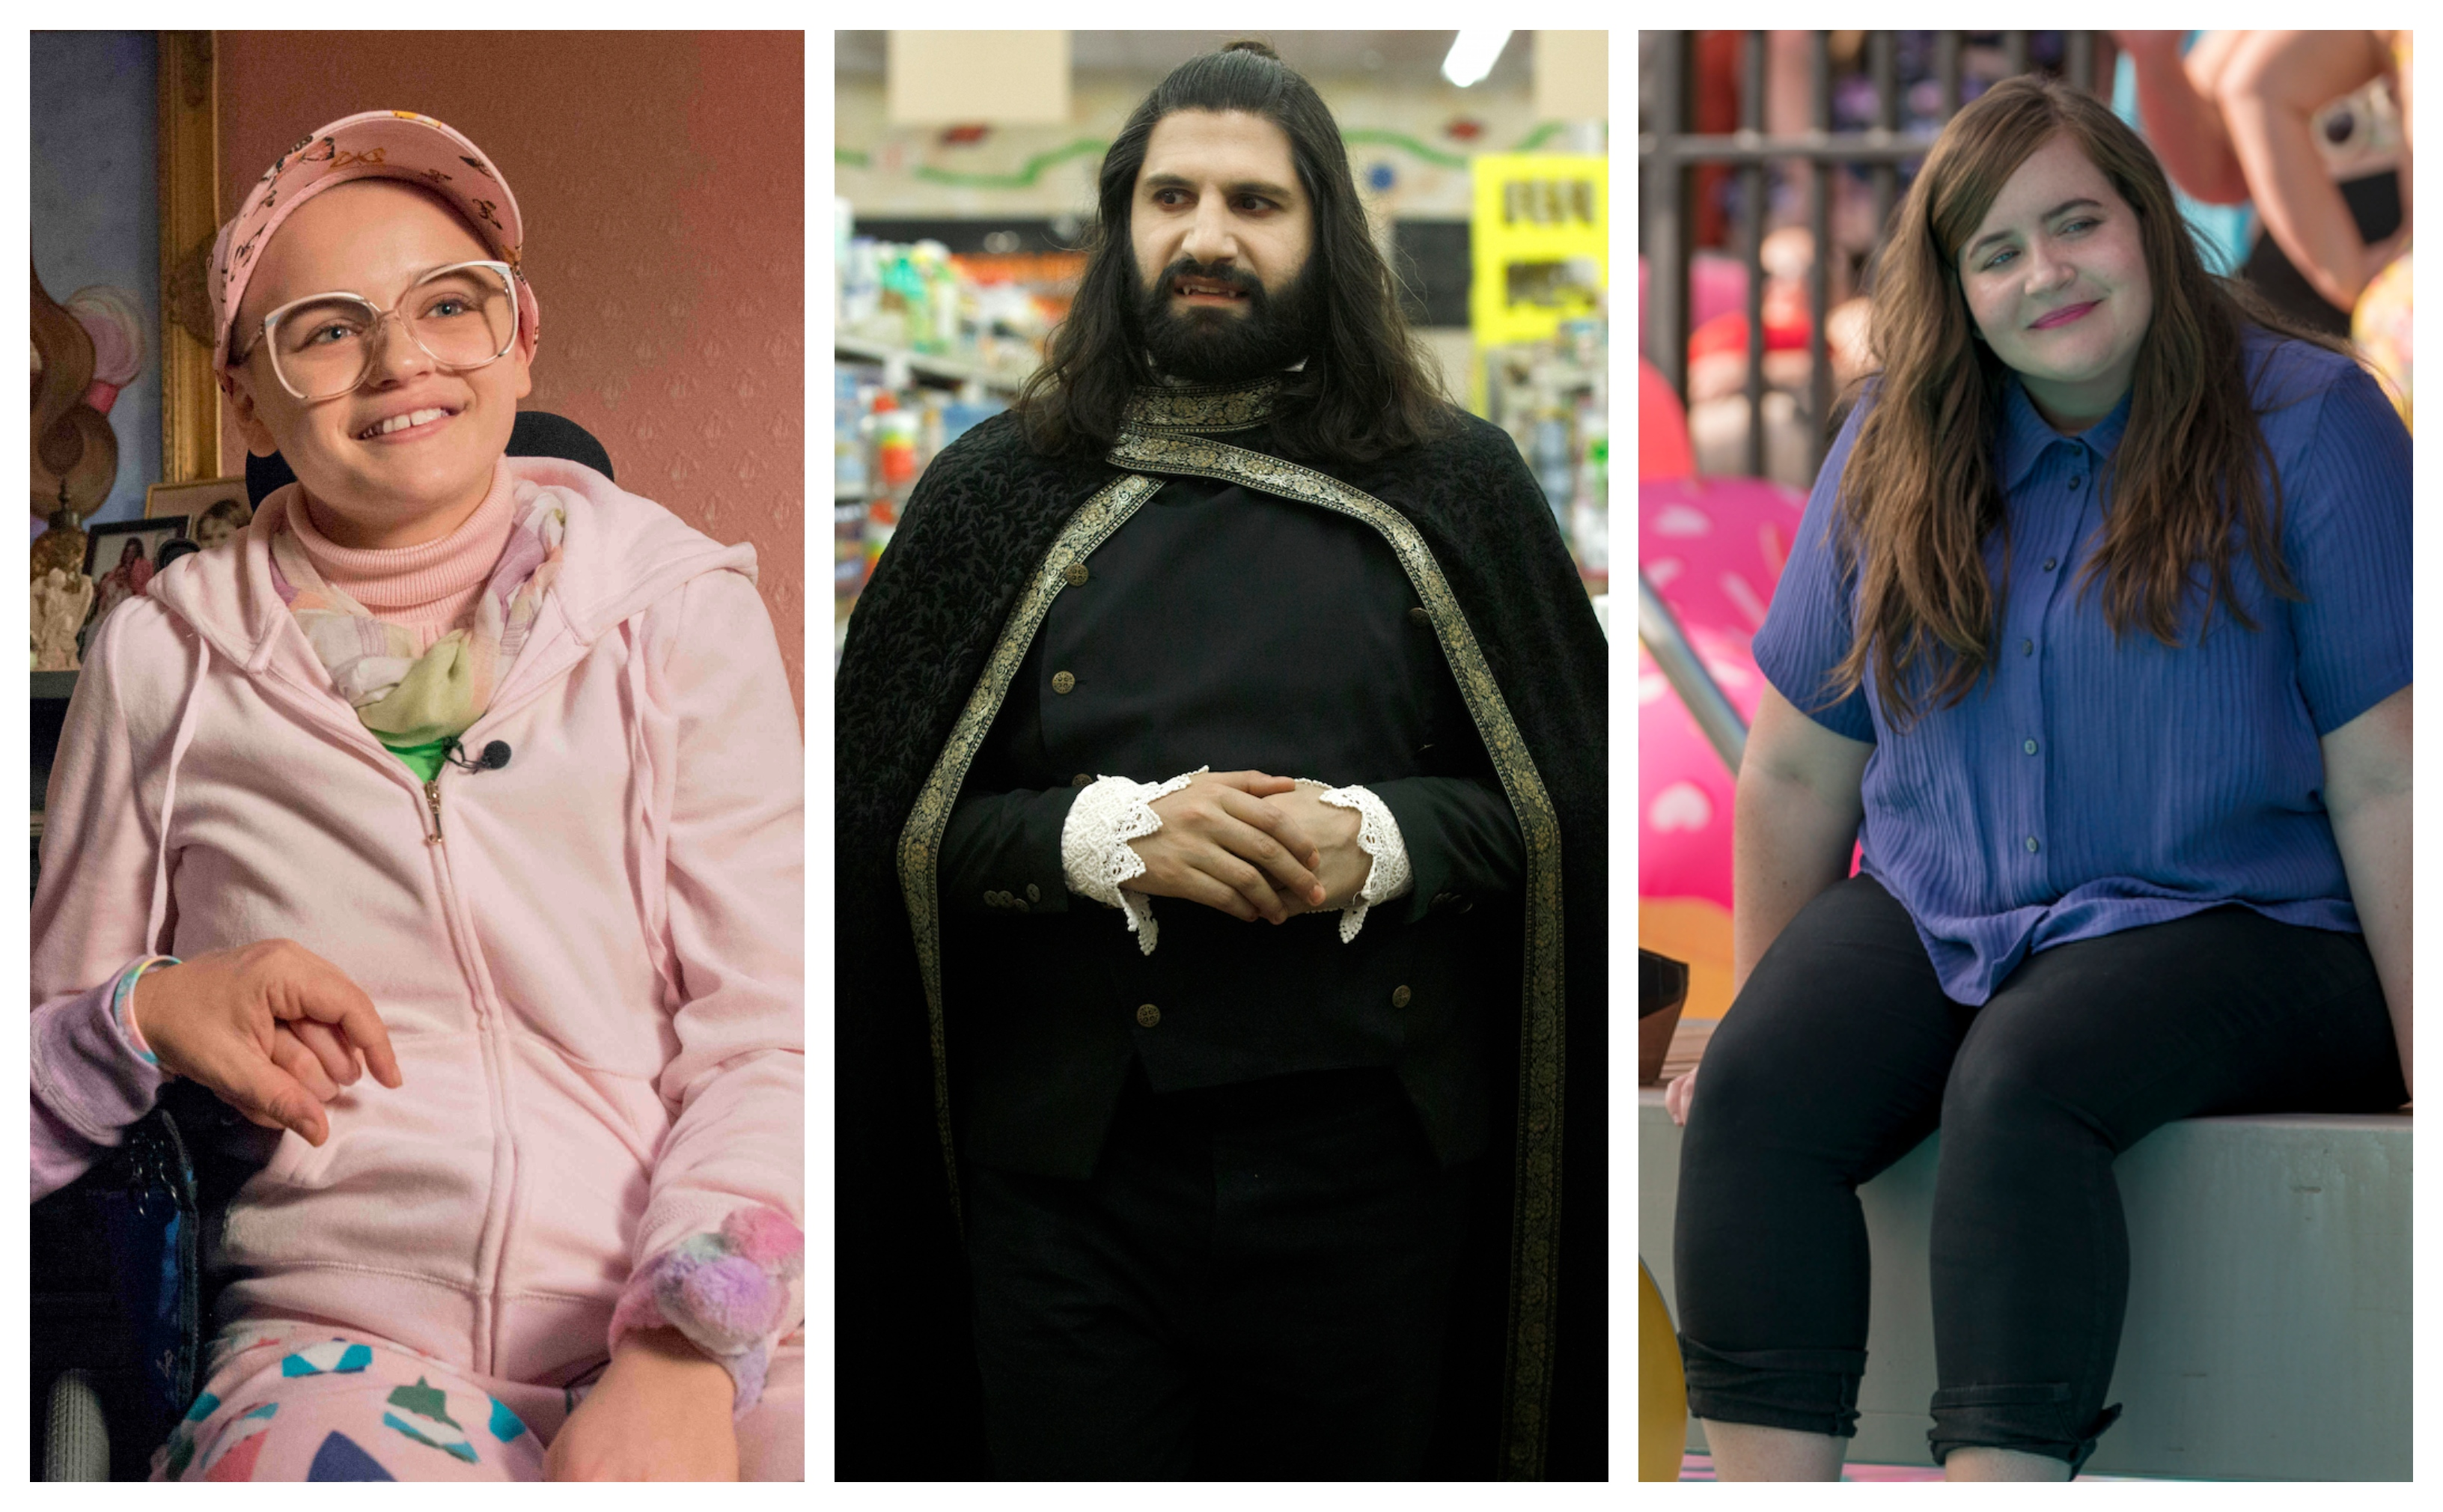 New On Hulu March 2020 New Shows in March 2019: TV Premieres for Amazon, HBO, and Hulu